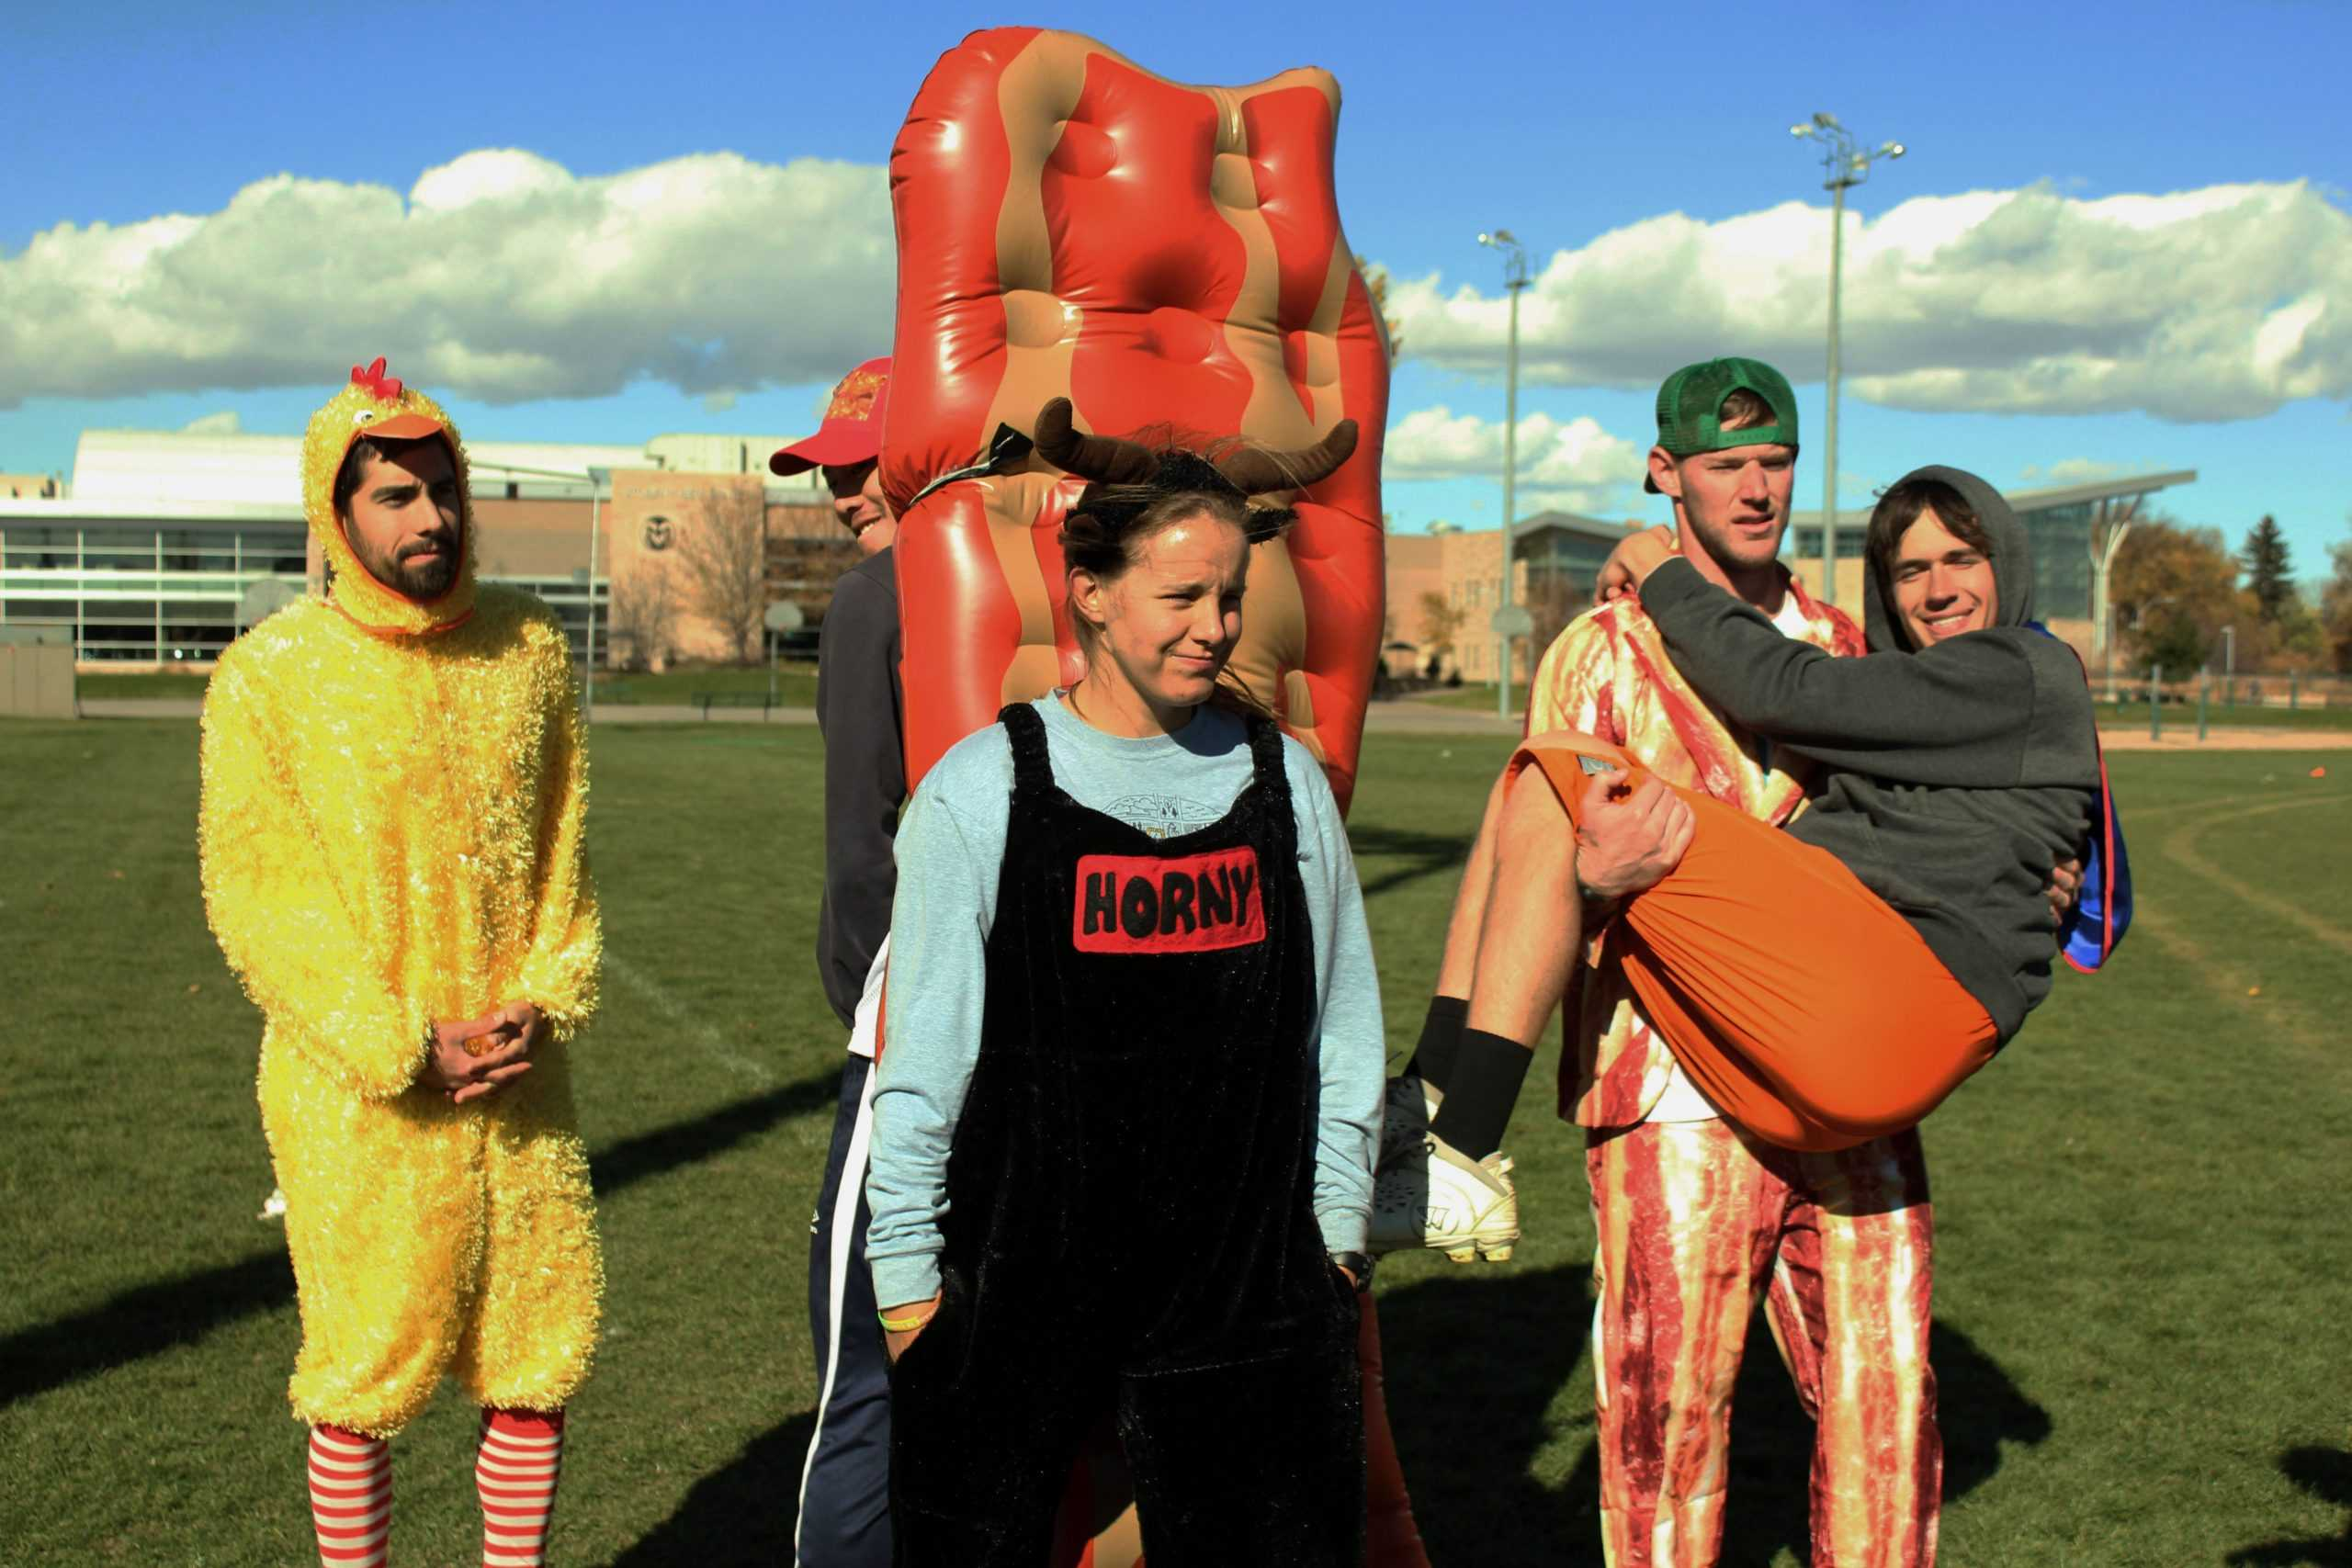 Photo gallery Students play ultimate frisbee in Halloween costumes  sc 1 st  The Rocky Mountain Collegian & Photo gallery: Students play ultimate frisbee in Halloween costumes ...